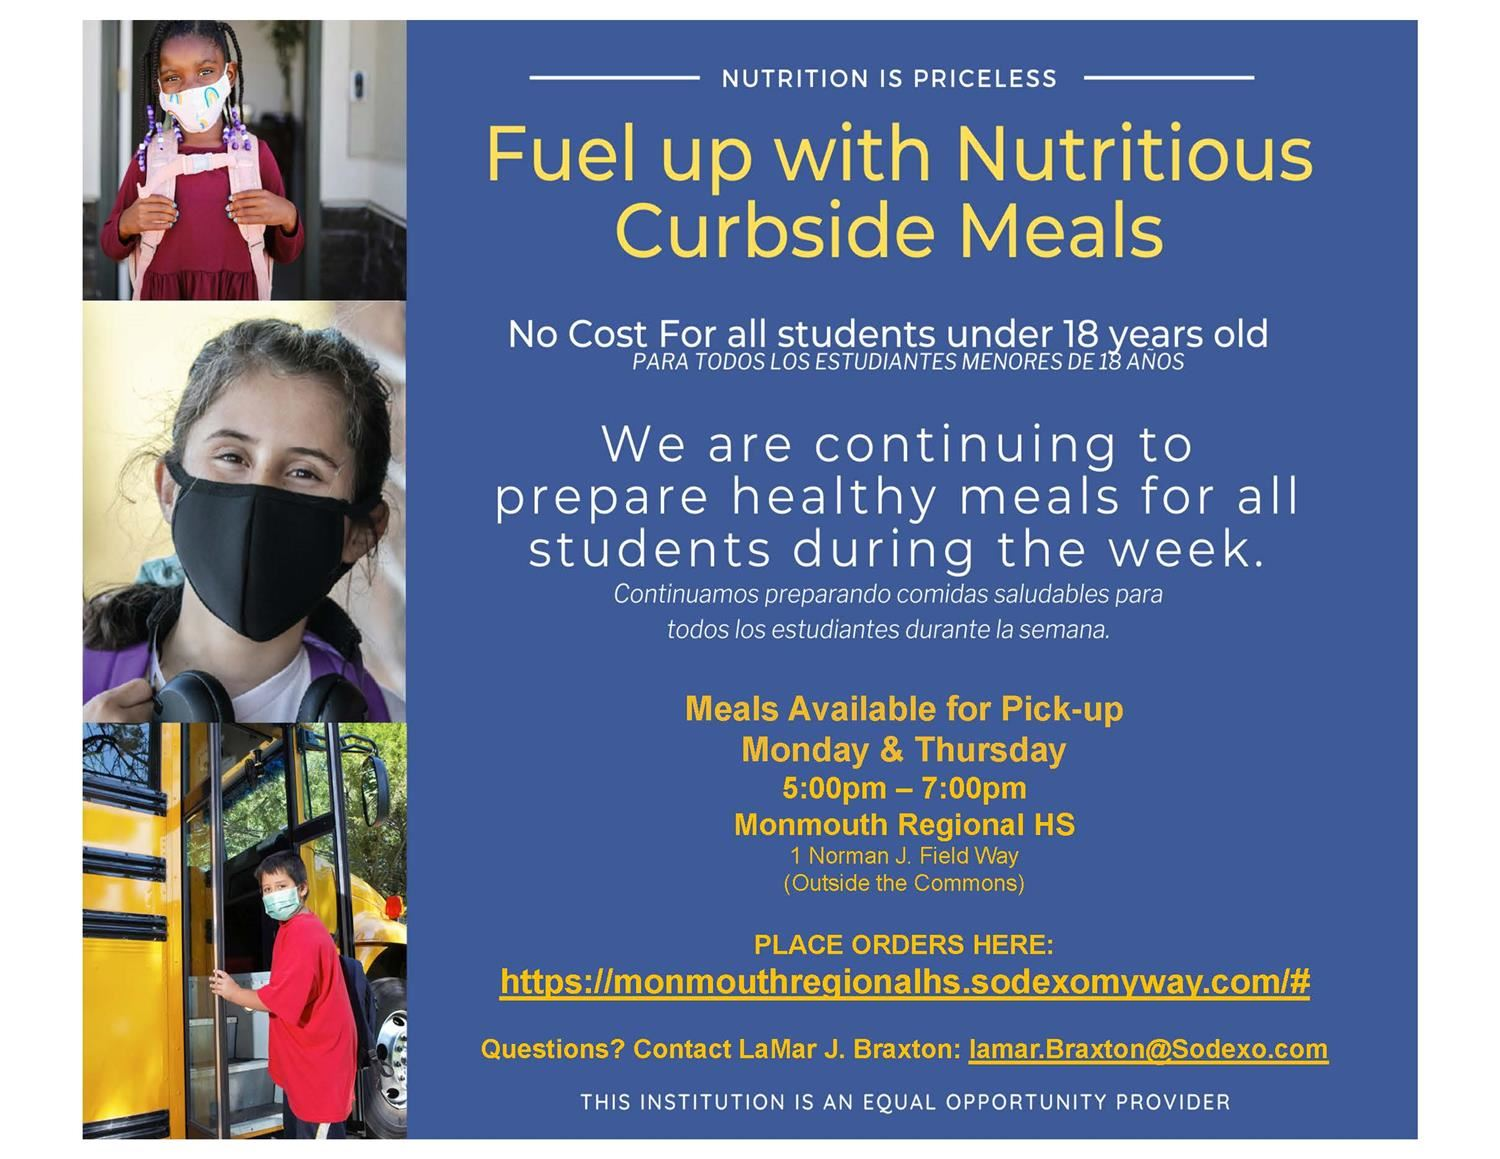 Fuel Up with Nutritious Curbside Meals